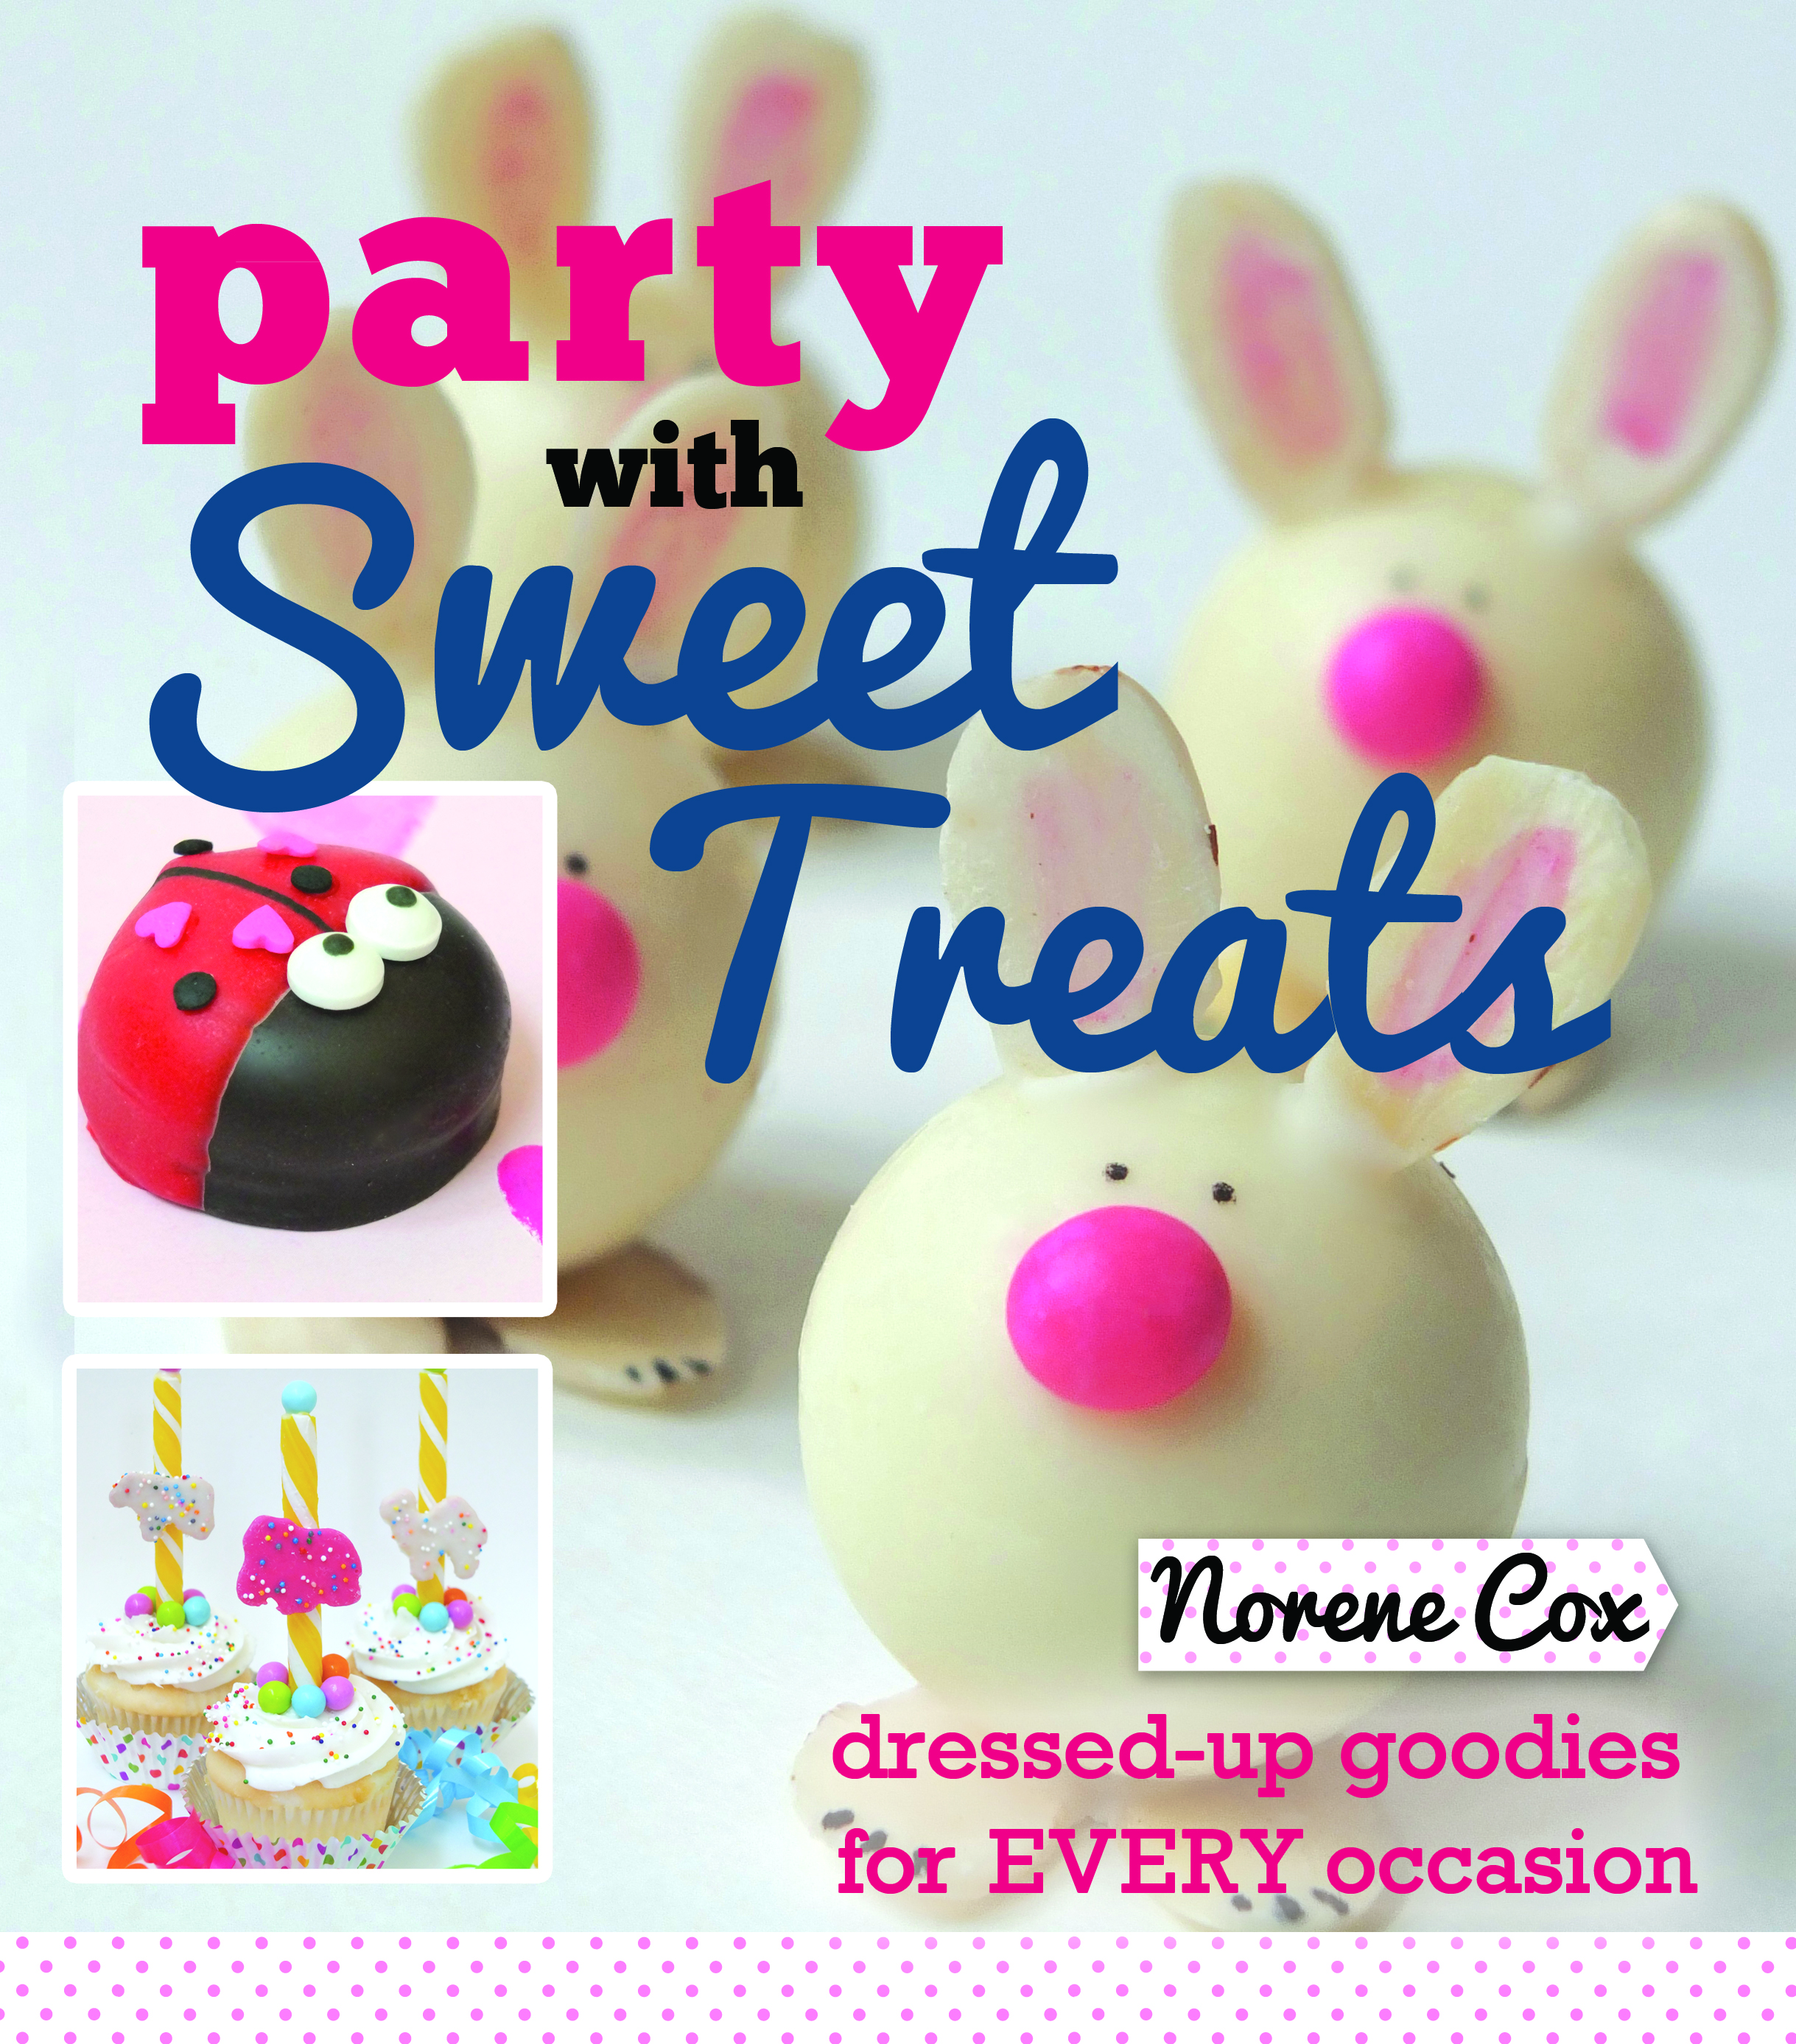 Party with Sweet Treats book by Norene Cox, author Norene Cox, easy dessert party ideas for every occasion